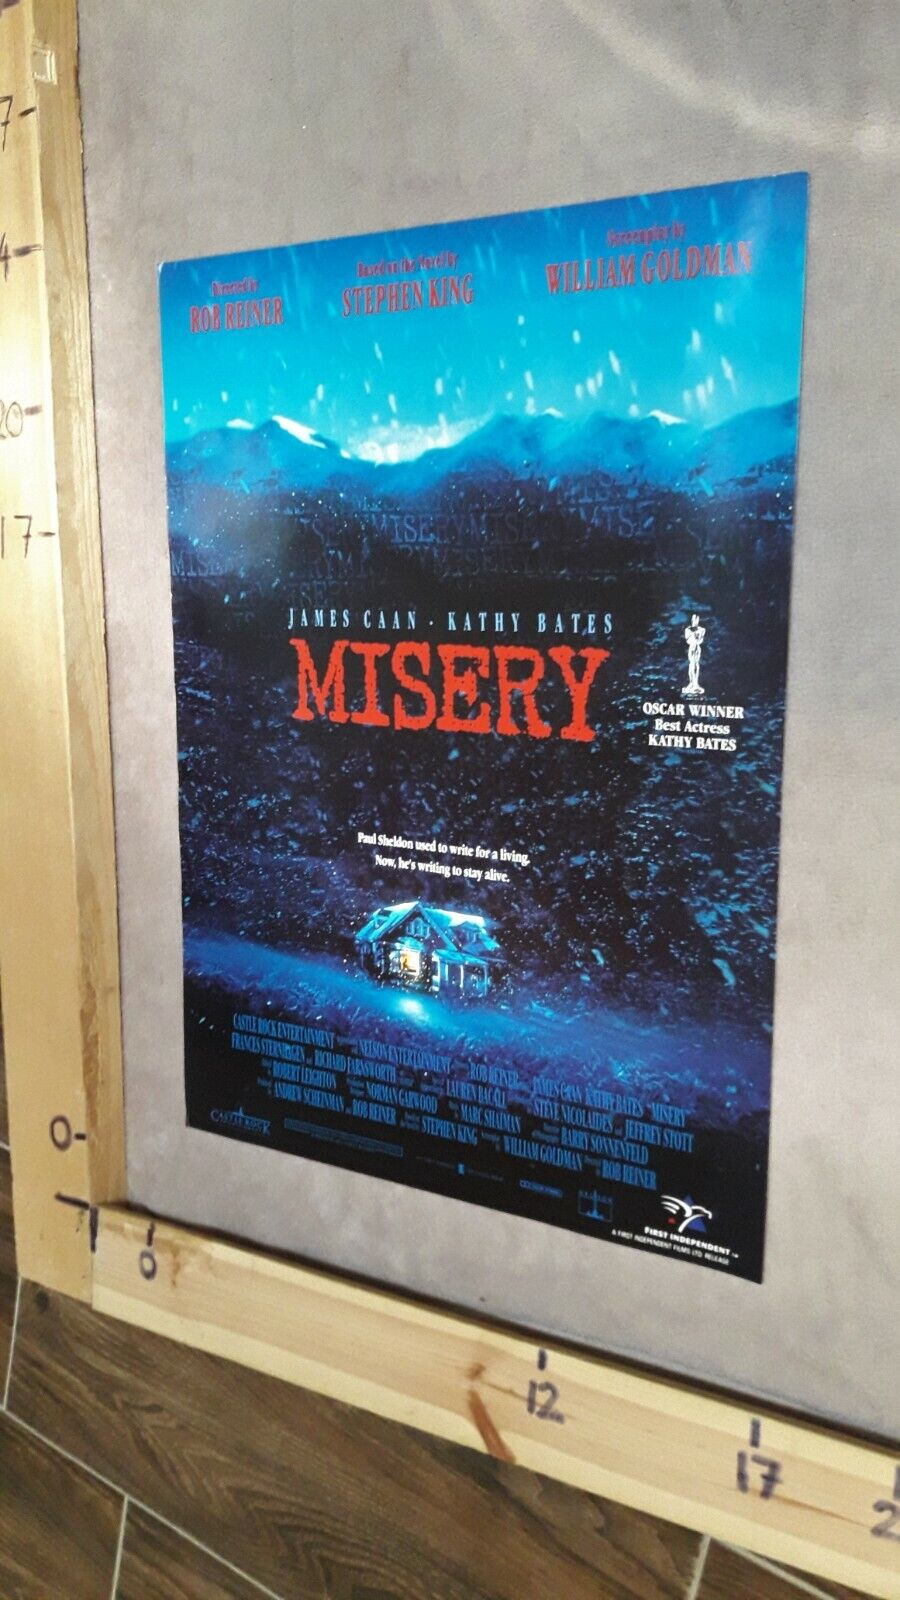 Misery (1990) Stephen King - UK Video poster - FREE SHIPPING